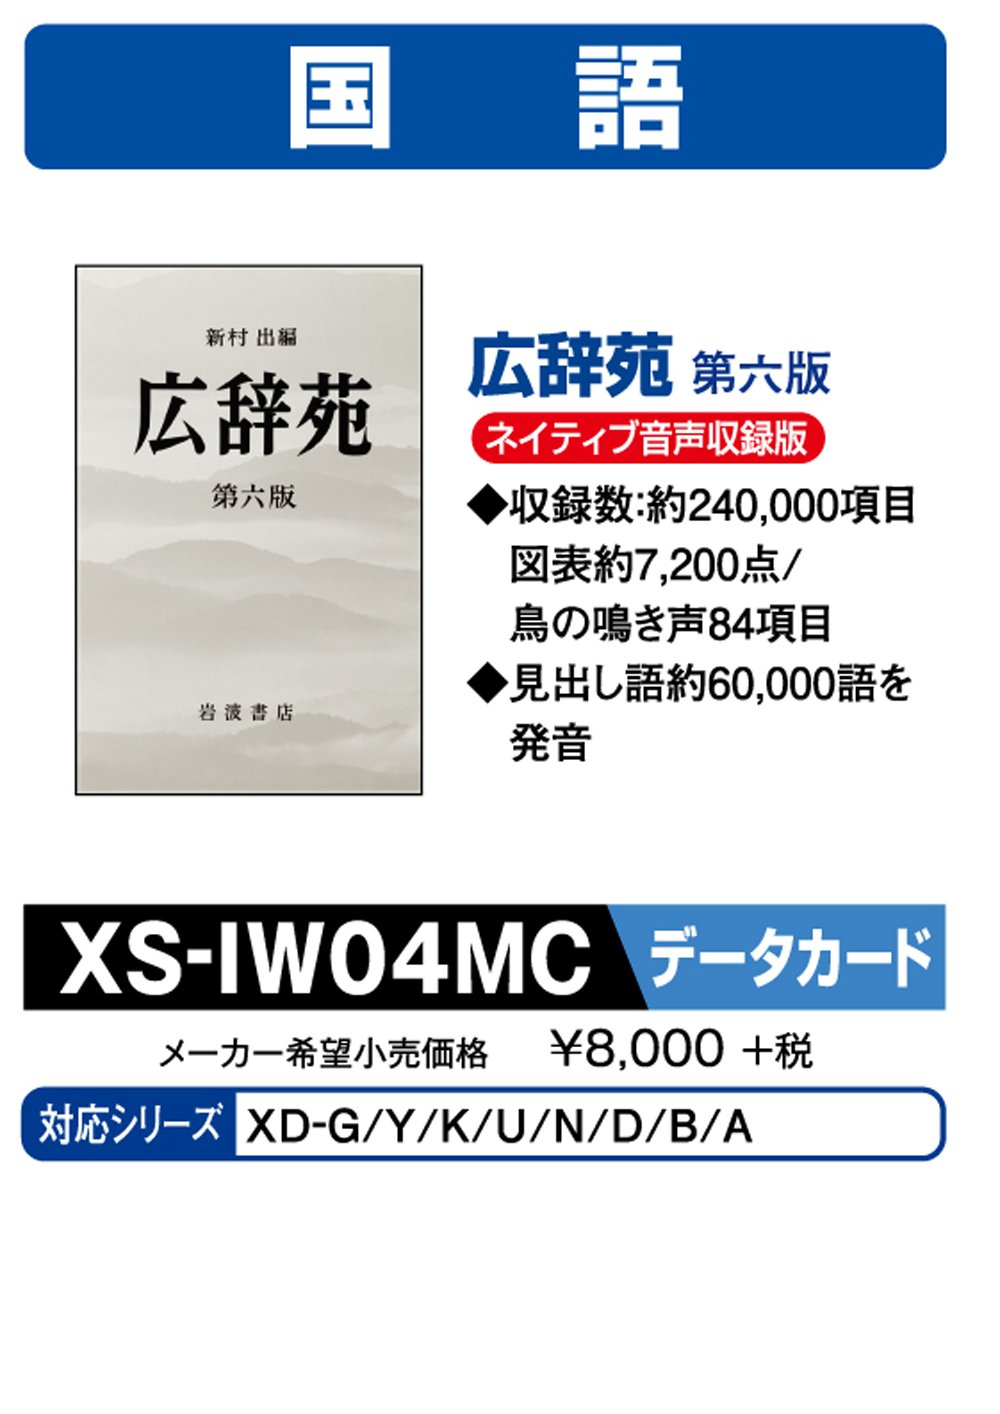 Casio electronic dictionary add content microSD card version Kojien sixth edition XS-IW04MC